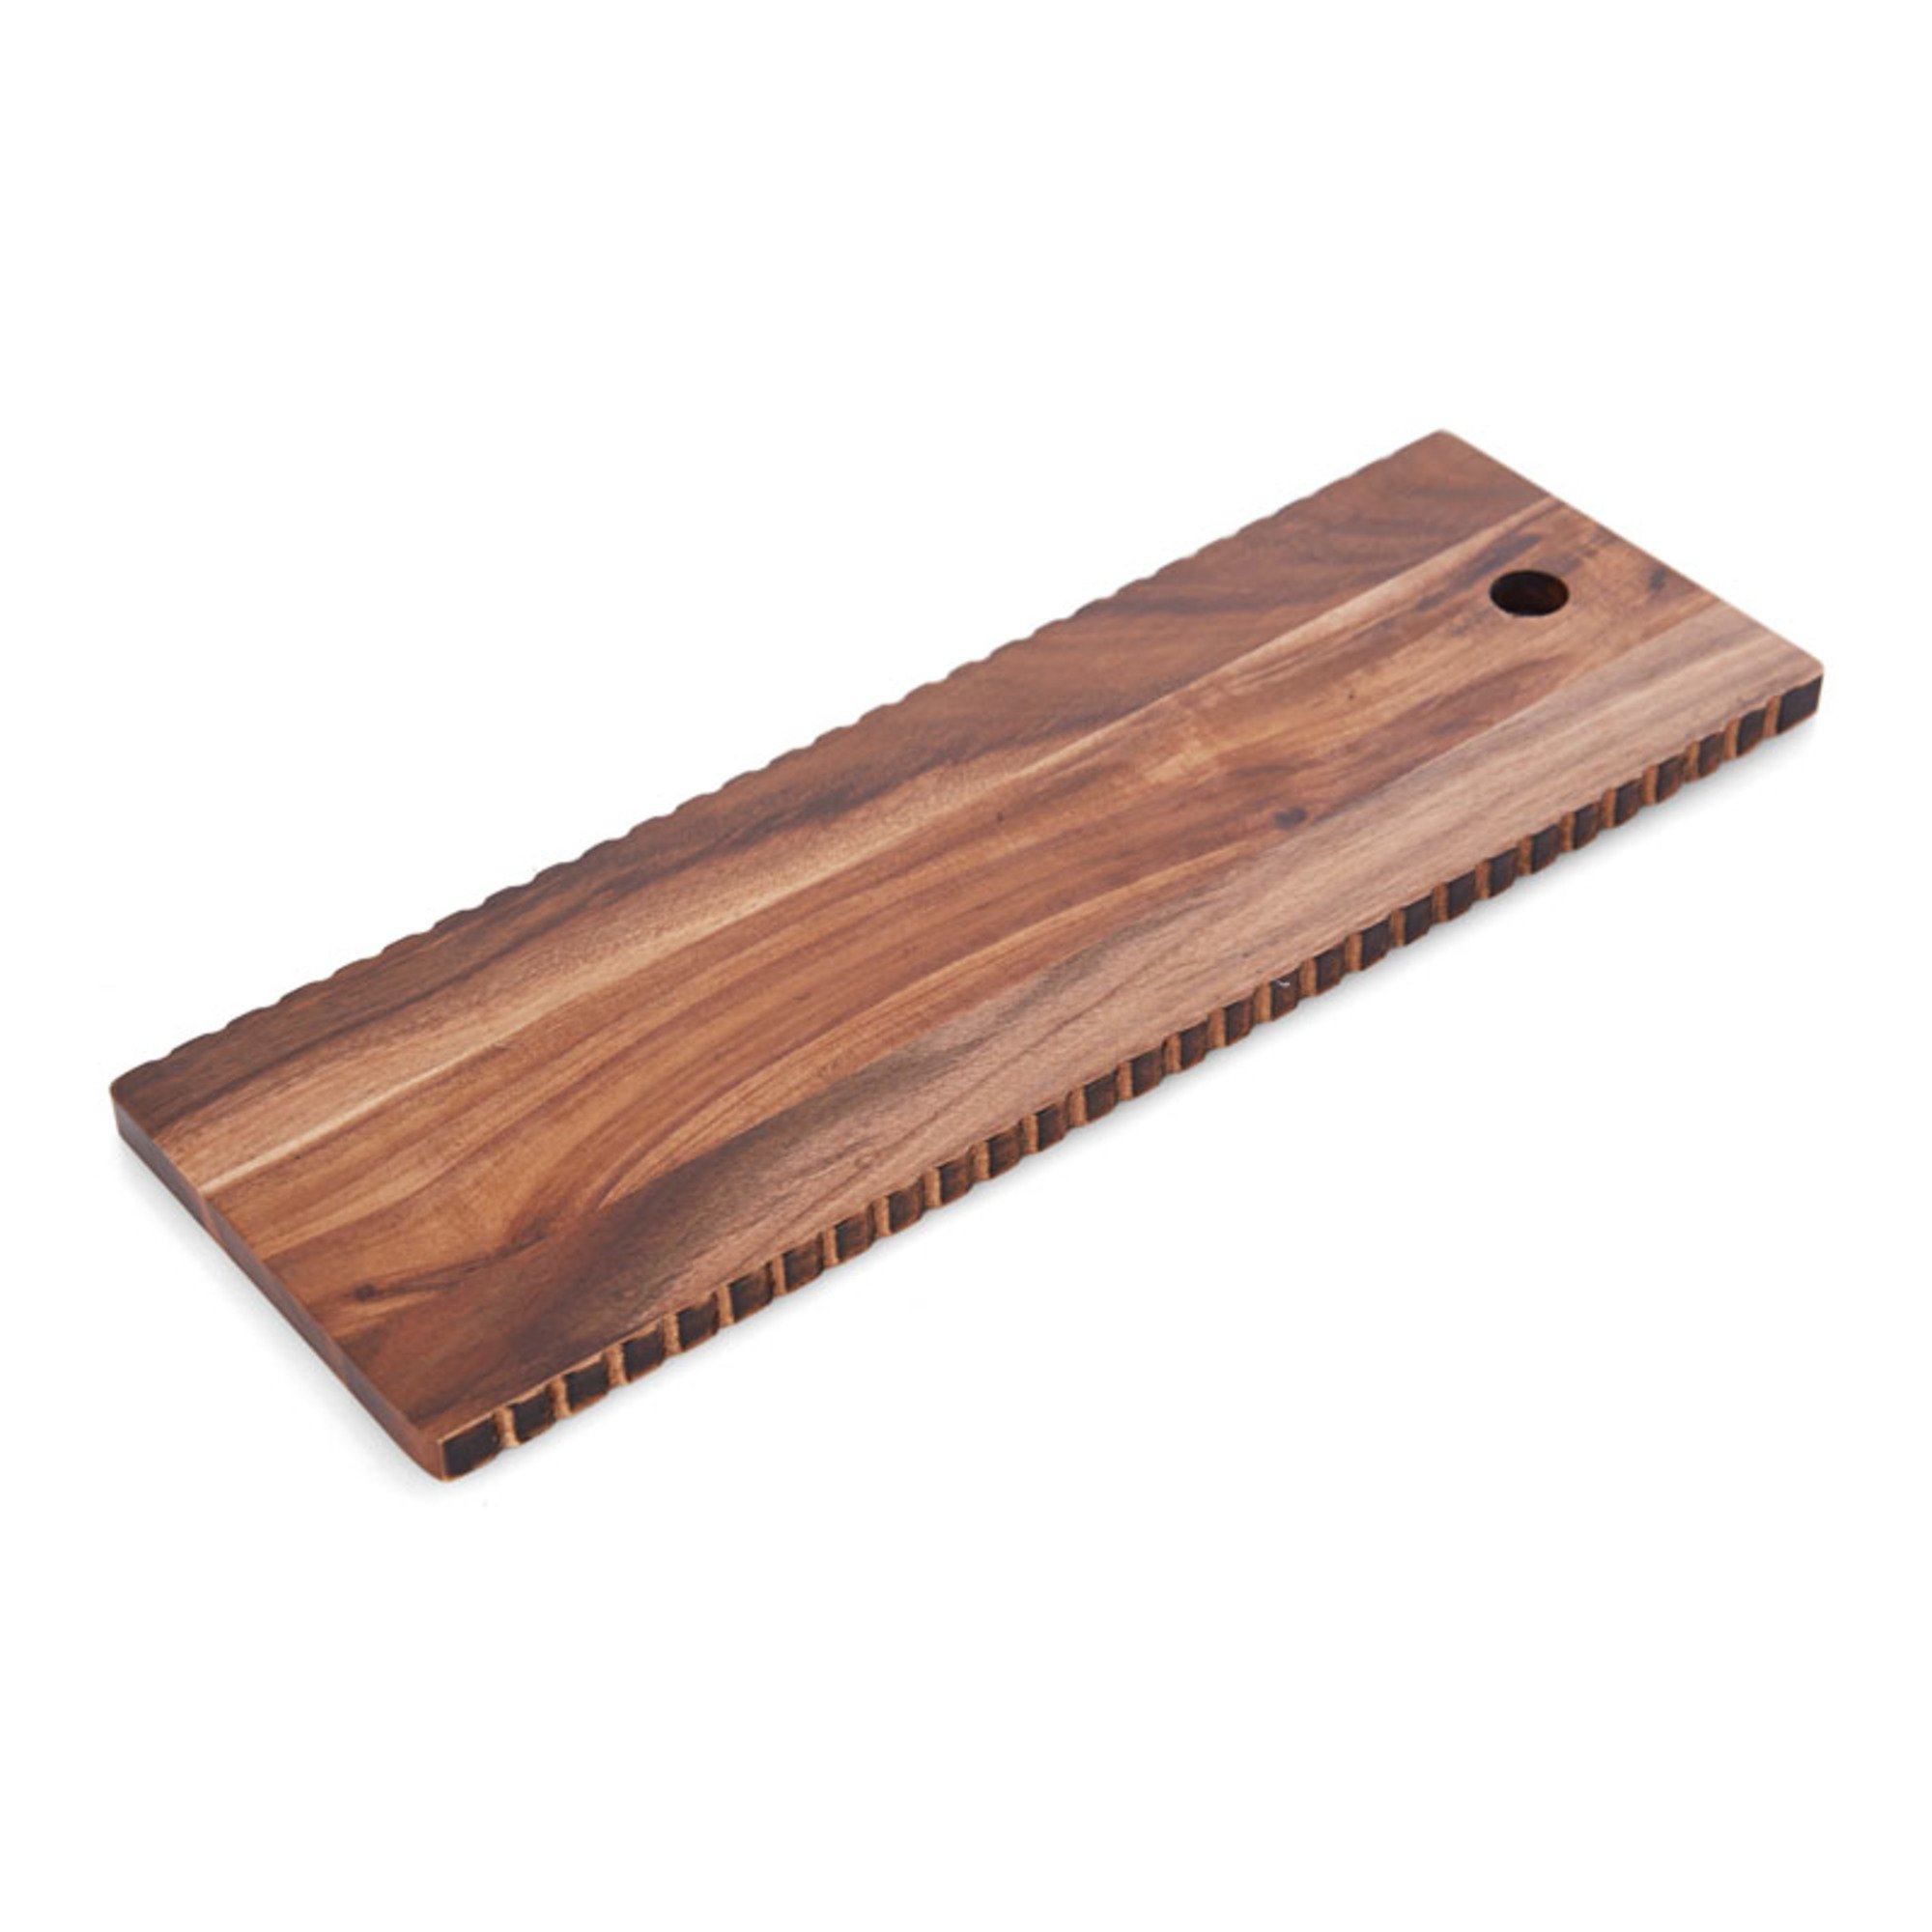 Bar Craft 5212694 Cheese Board, Wood